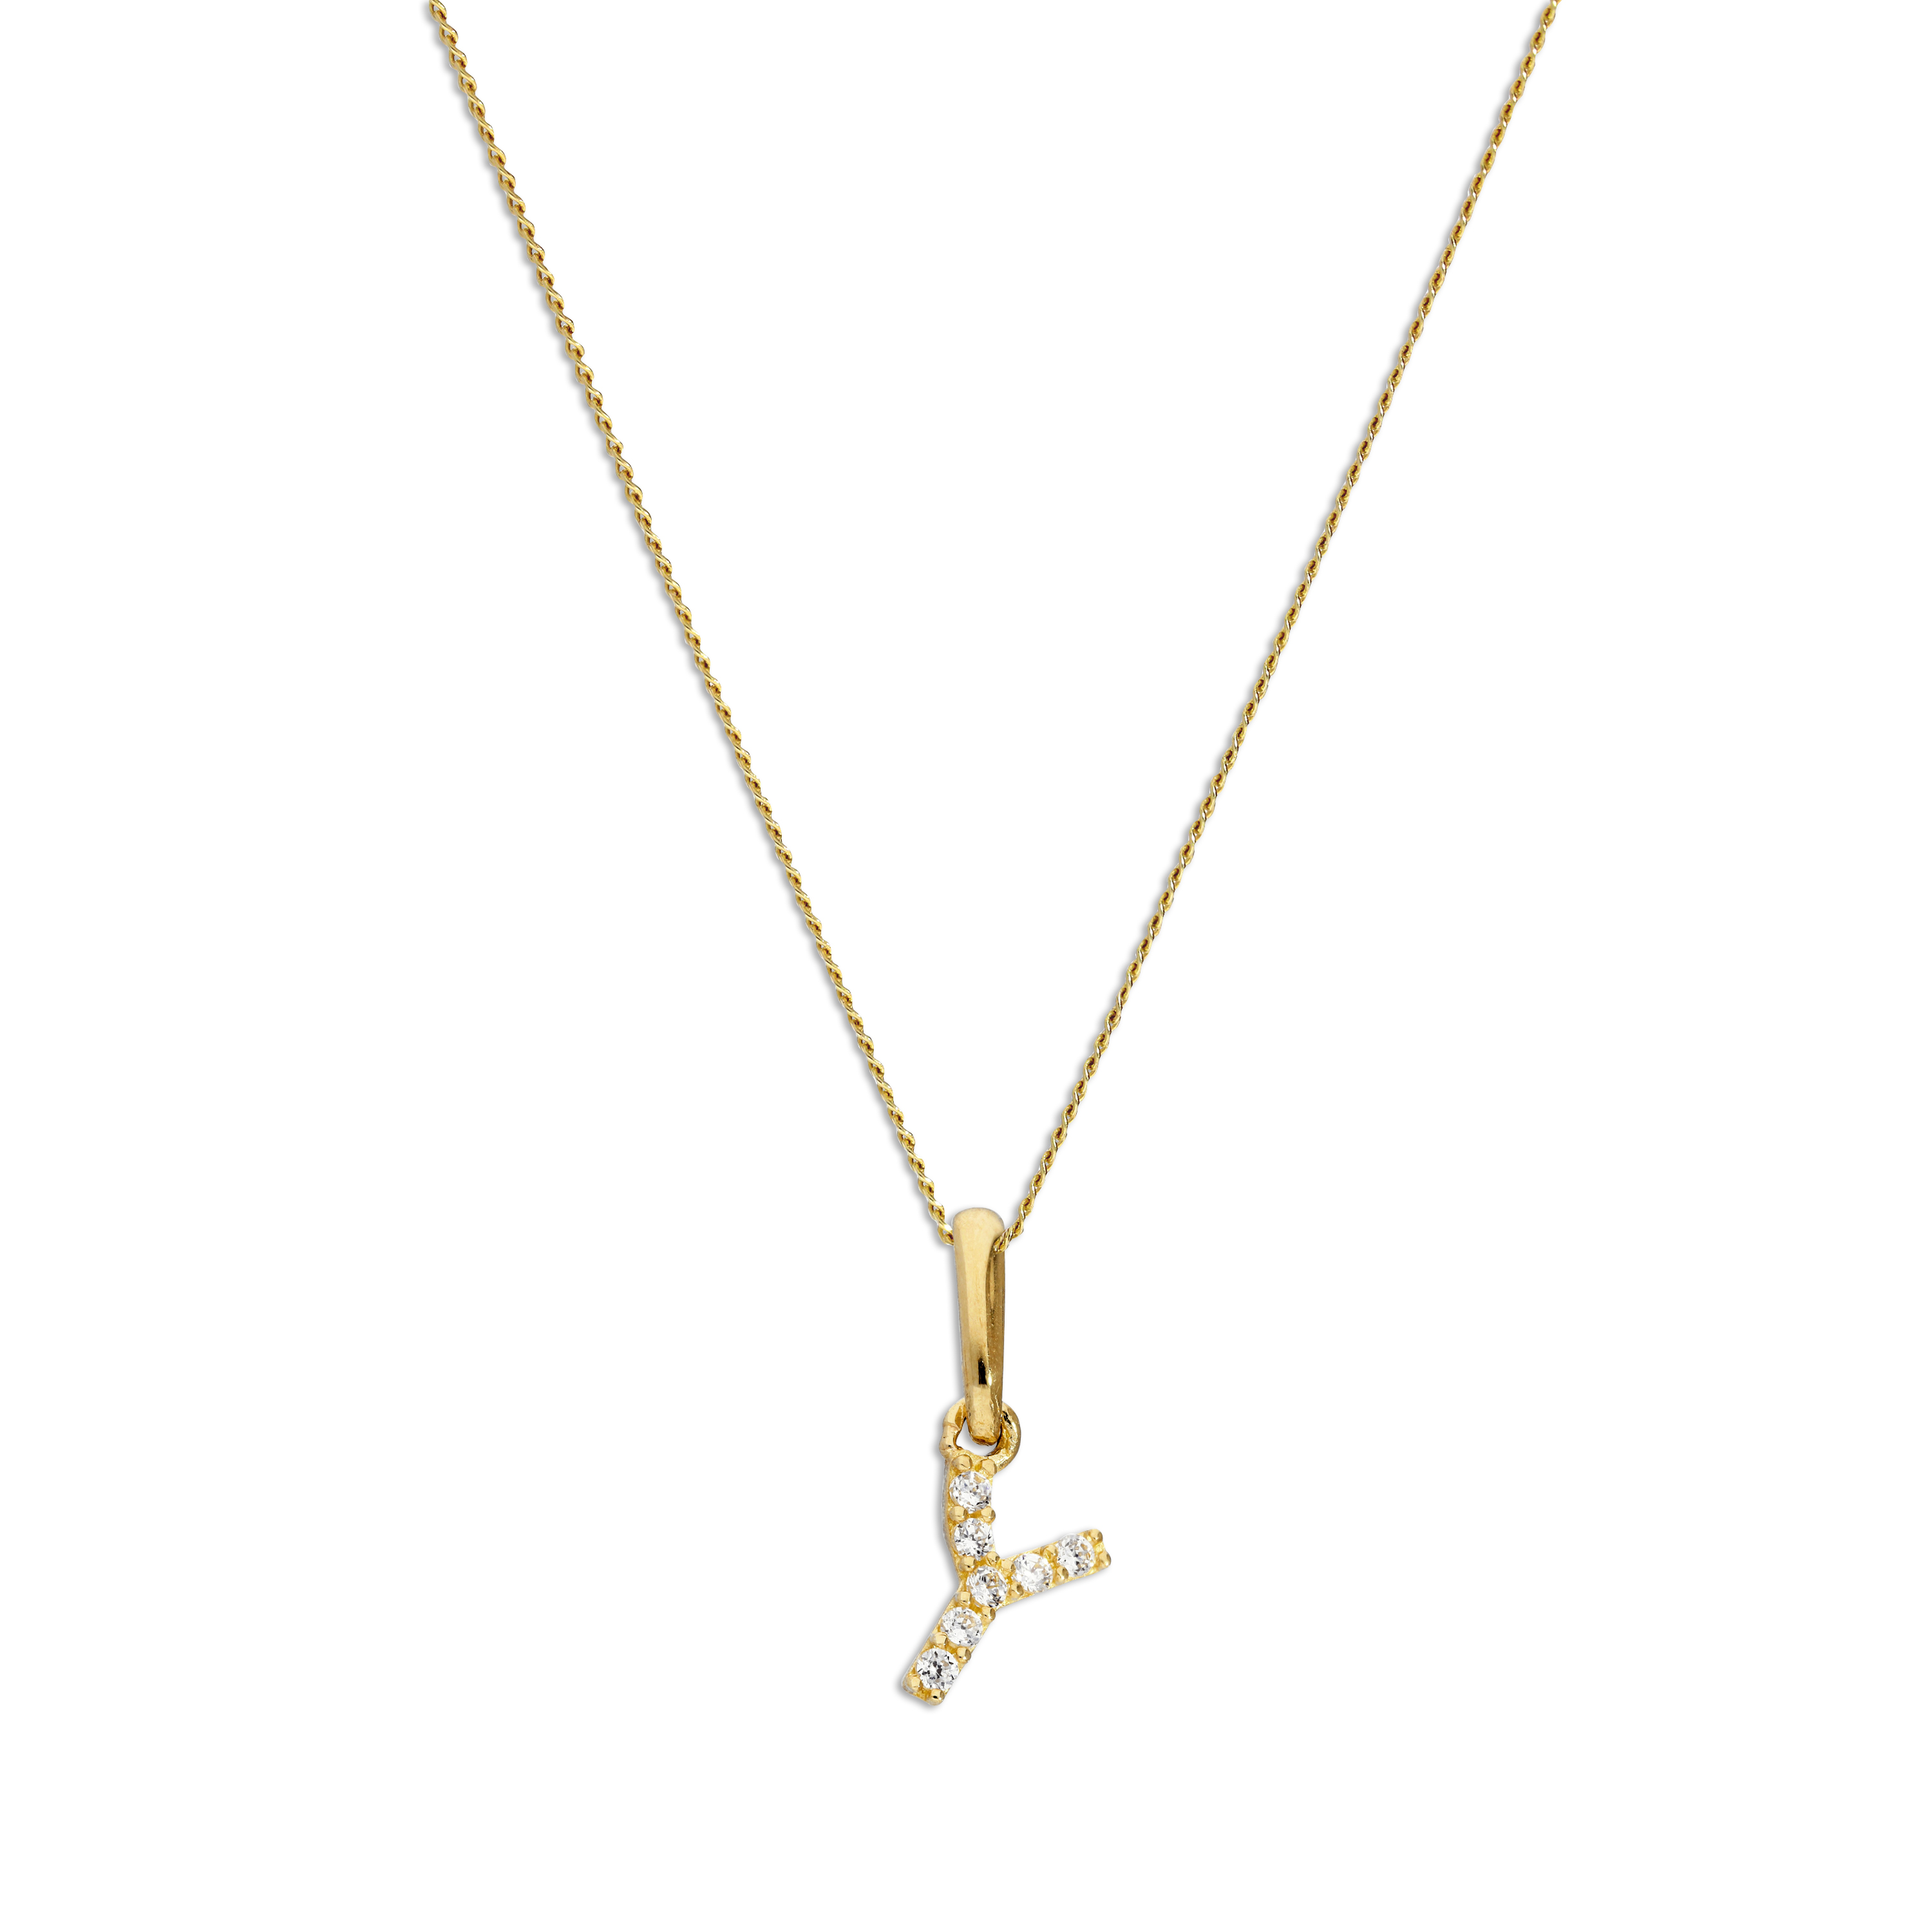 An image of 9ct Gold Clear CZ Crystal Script Alphabet Letter Y Necklace 20 Inches Chain